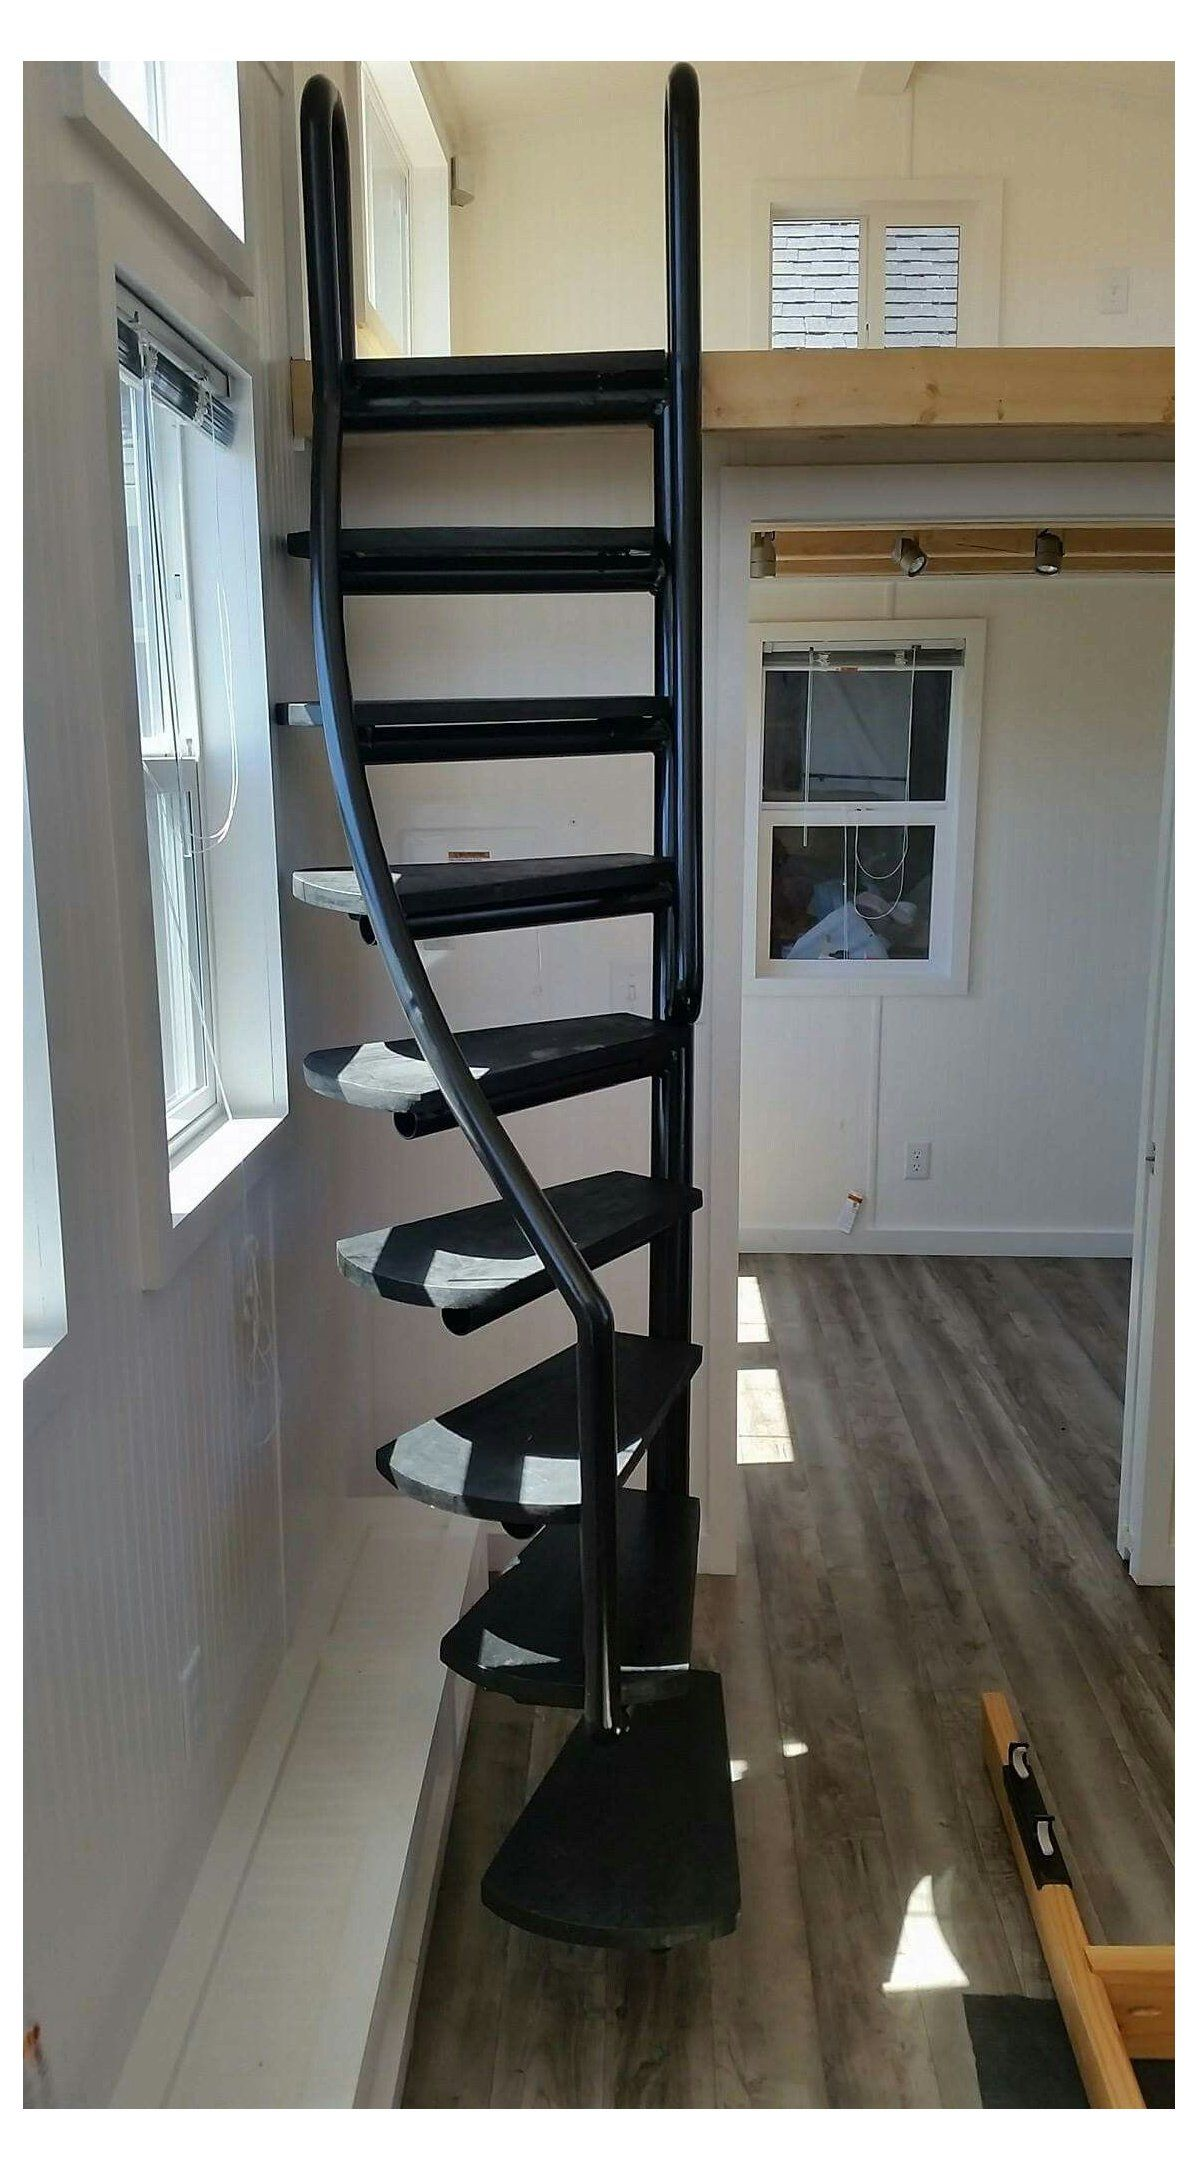 14 Fabulous Modern Attic Ladder Ideas Wardrobeorganization In 2020 Tiny House Stairs Attic Ladder Attic Remodel